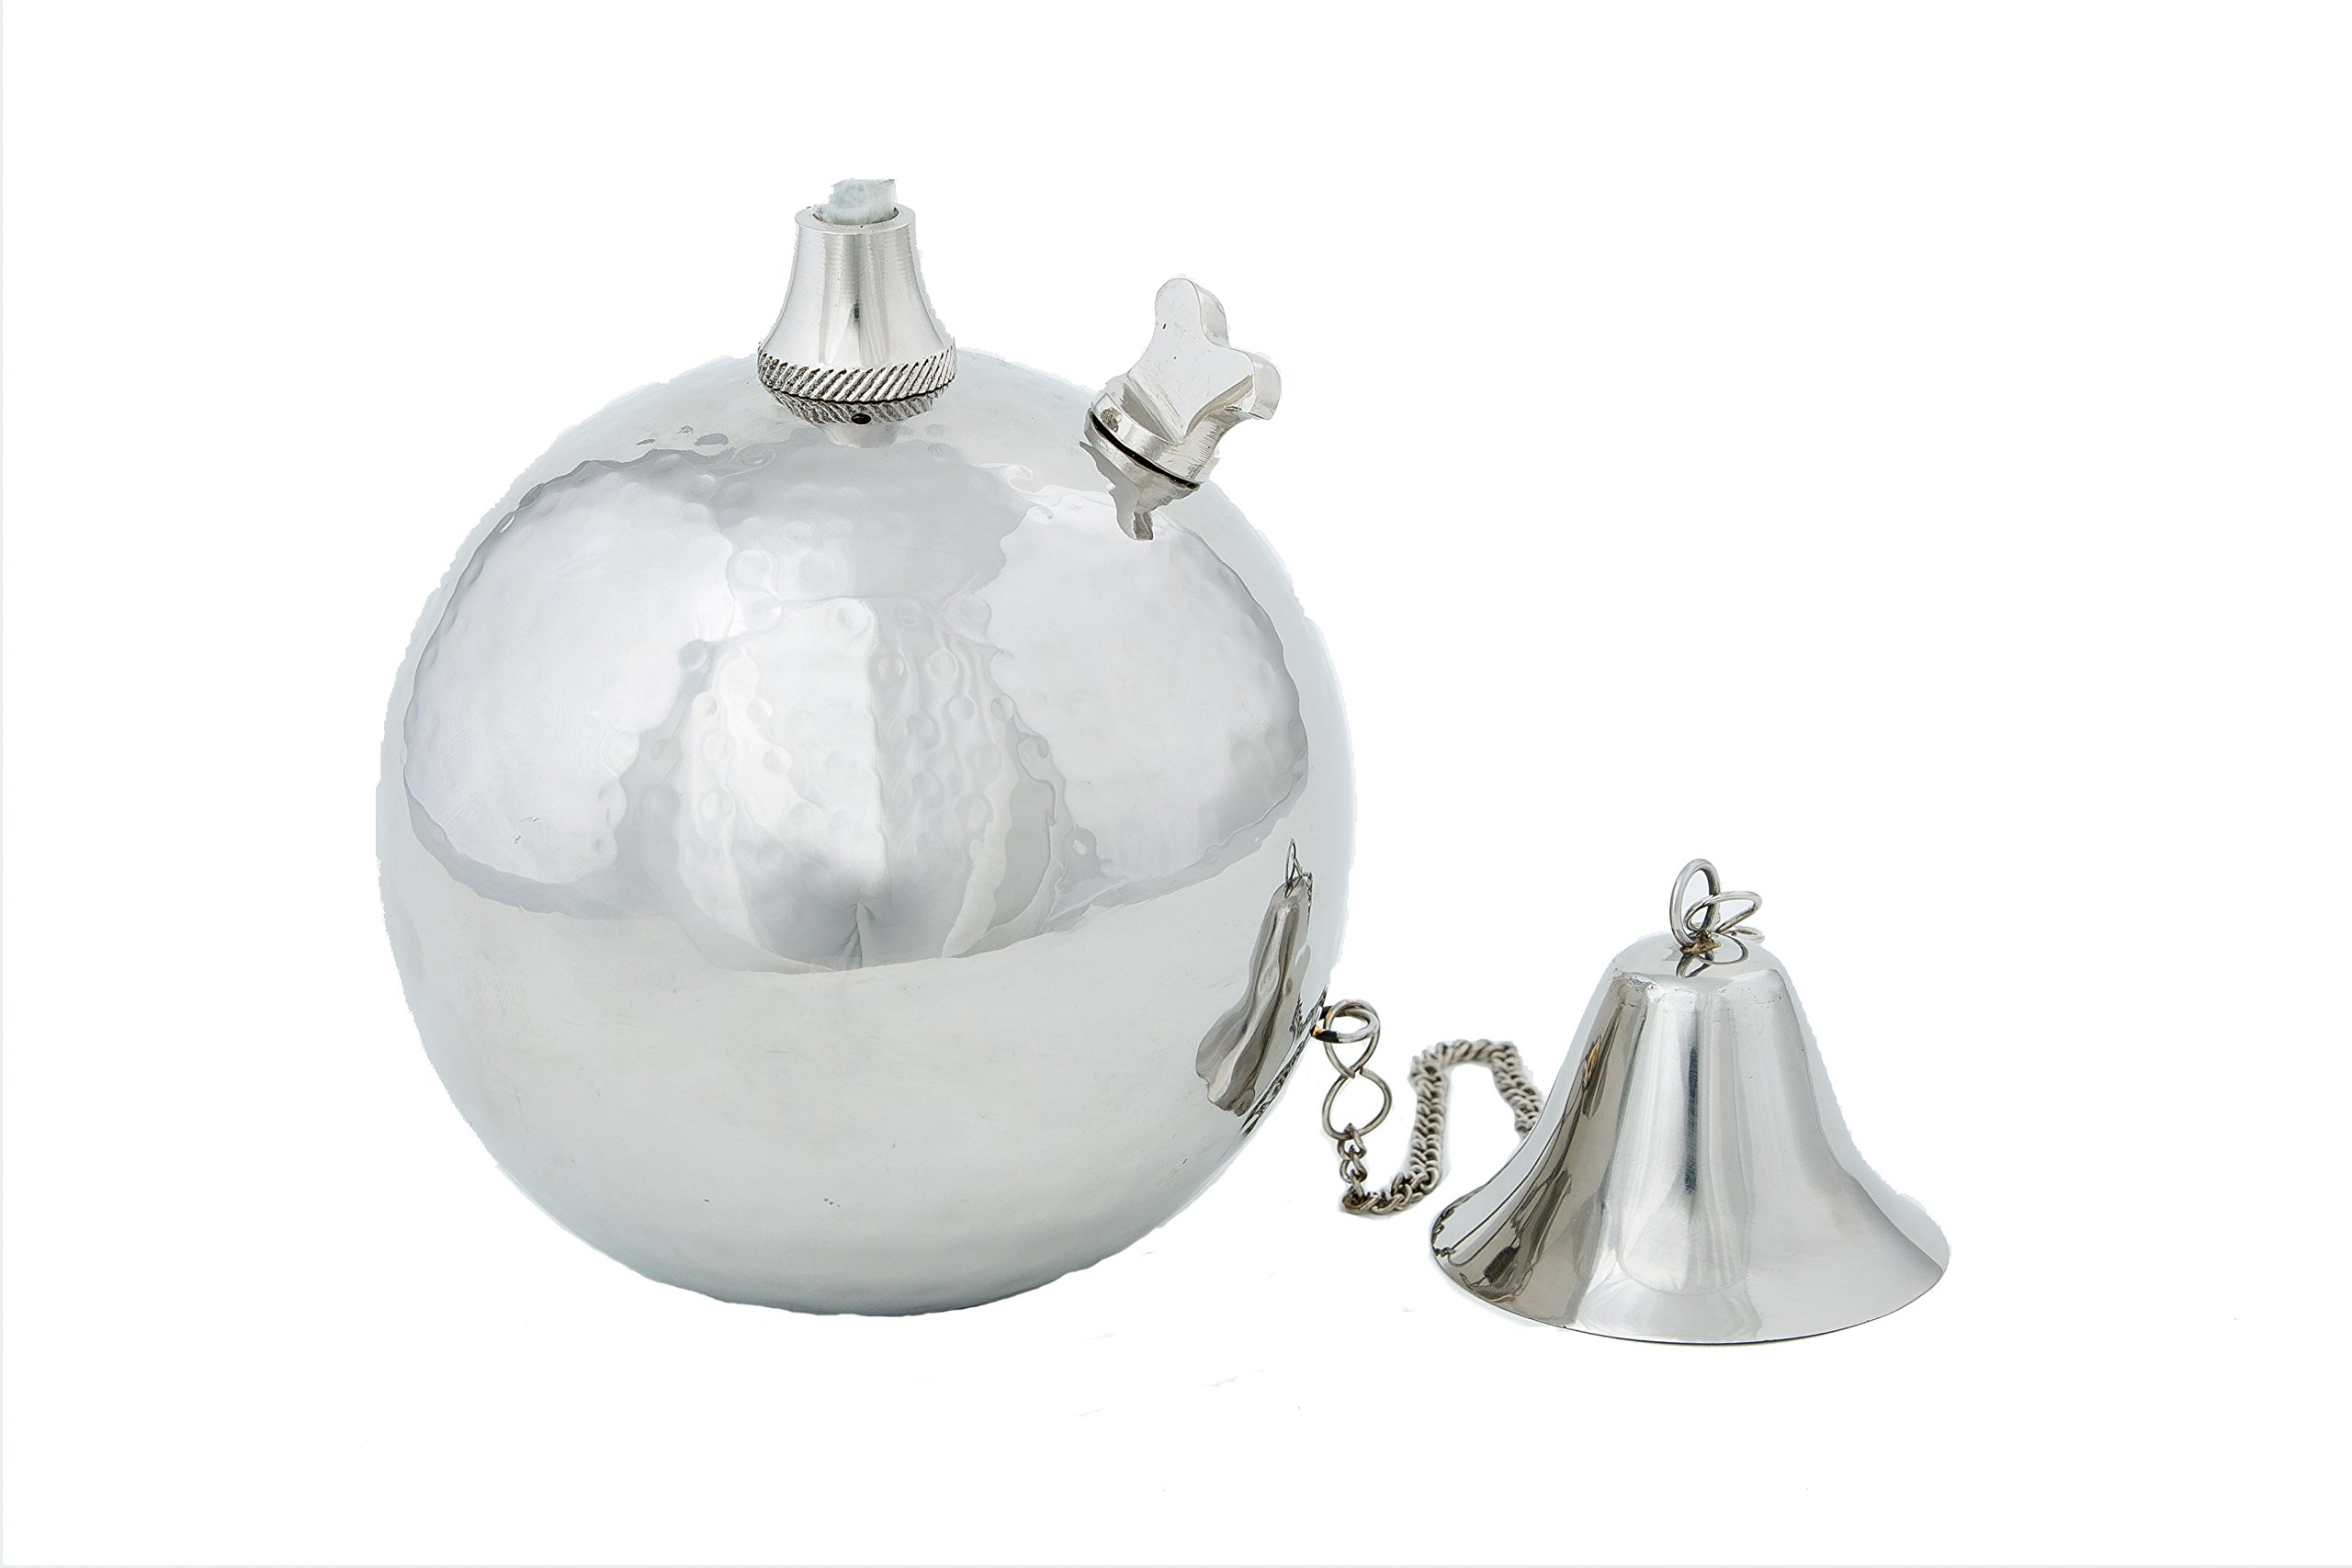 Hammered Stainless Steel Globe Oil Lamp, Tabletop Torch, Set of 2 (Small)